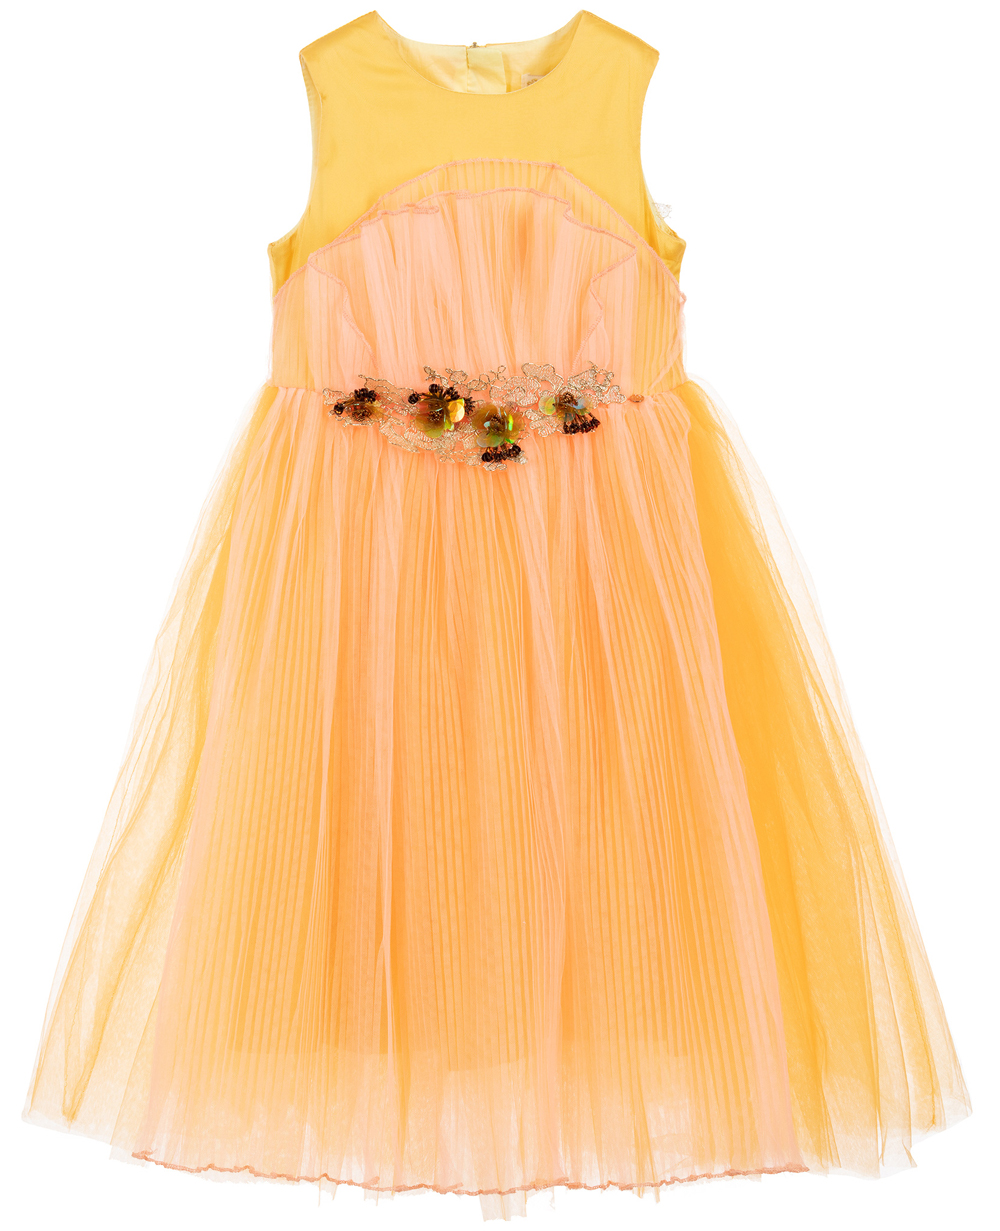 Orange Sleeveless Tulle Dress Embroidered Dress